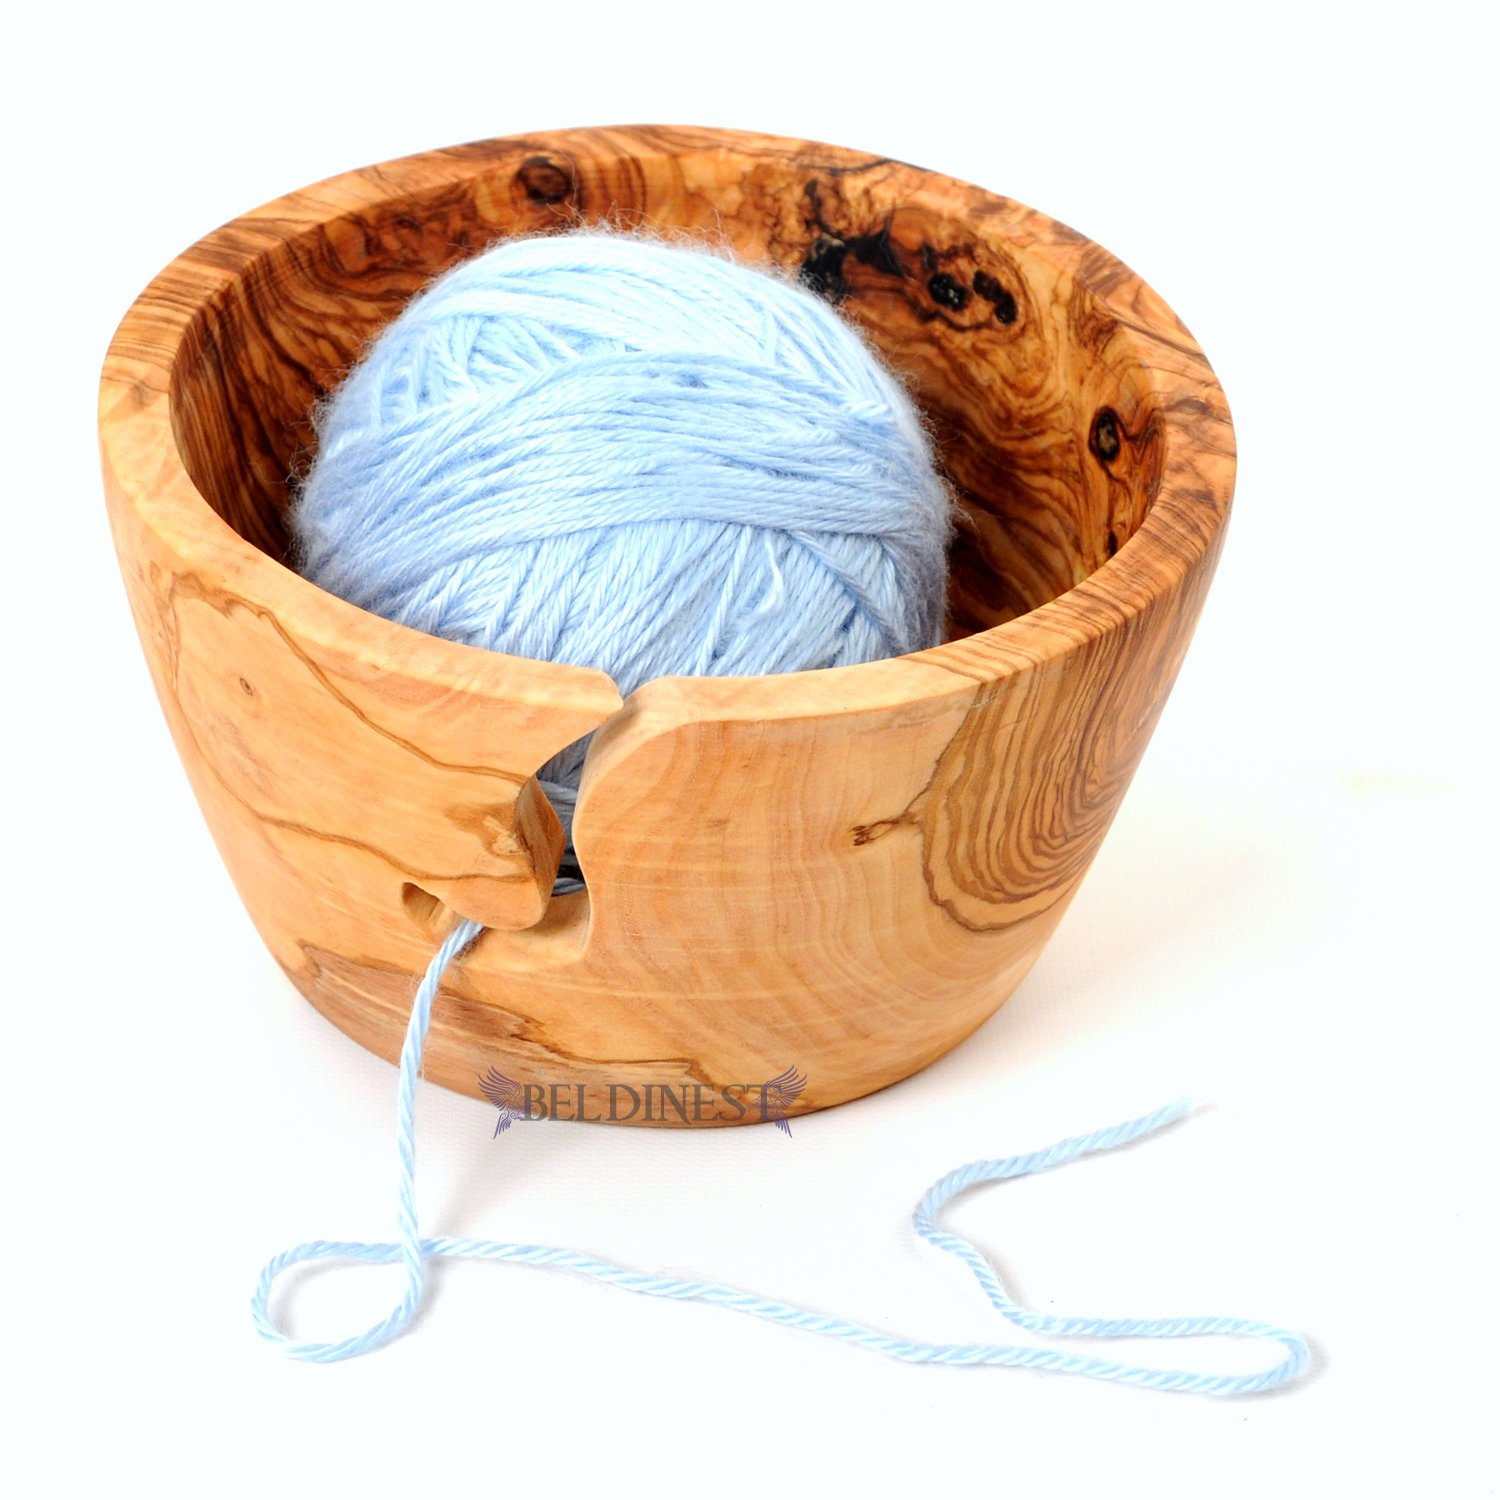 BeldiNest Sale! Knitting Bowl Hand-Carved from Olive Wood Yarn Bowl Gift Idea for Christmas BN-LSS1-007-18